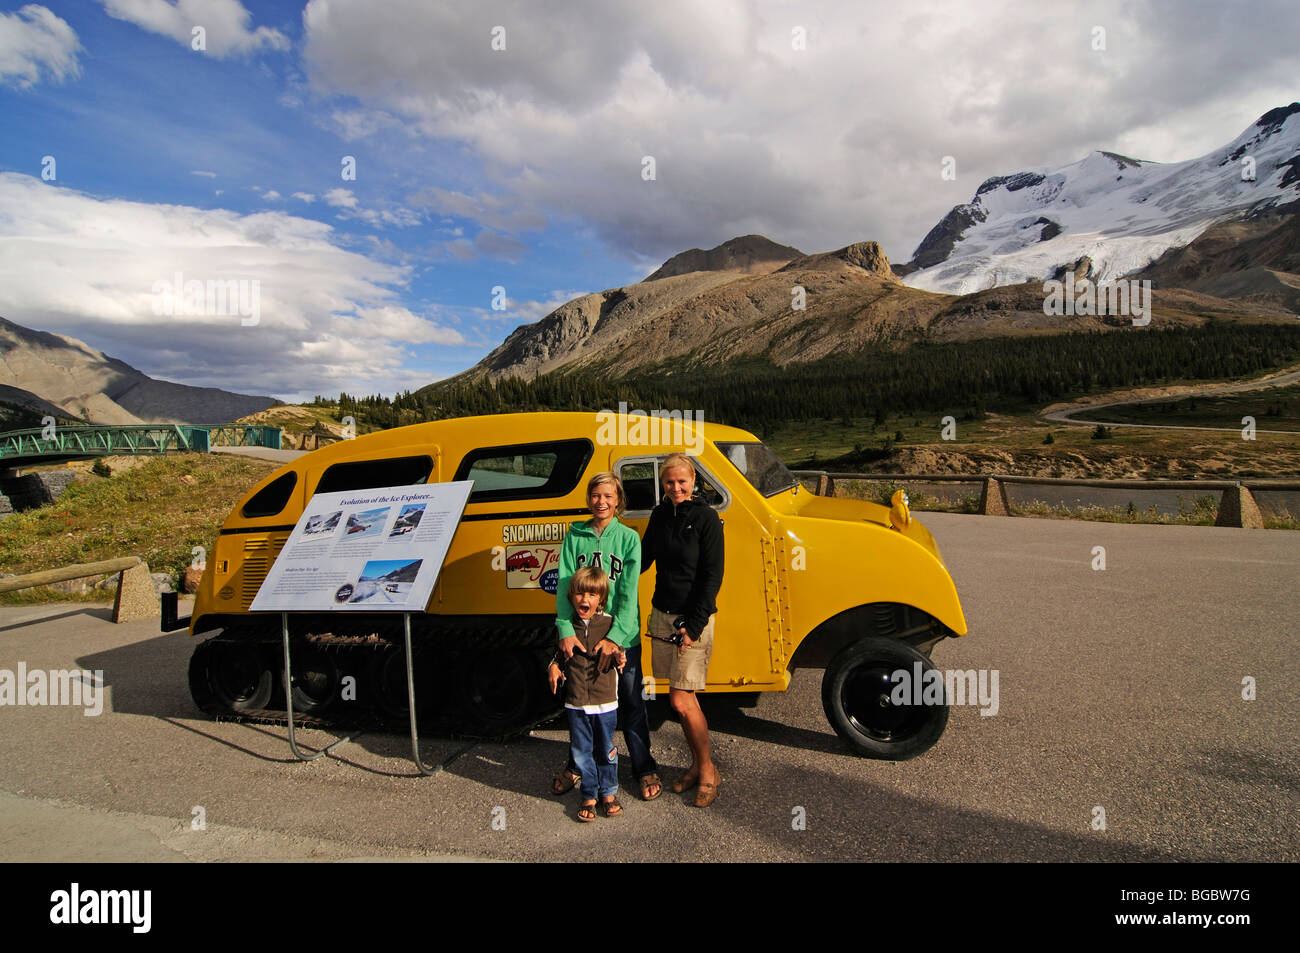 Women and children in front of an old snowmobile, Icefields Parkway, Columbia Icefield, Jasper National Park, Alberta, - Stock Image